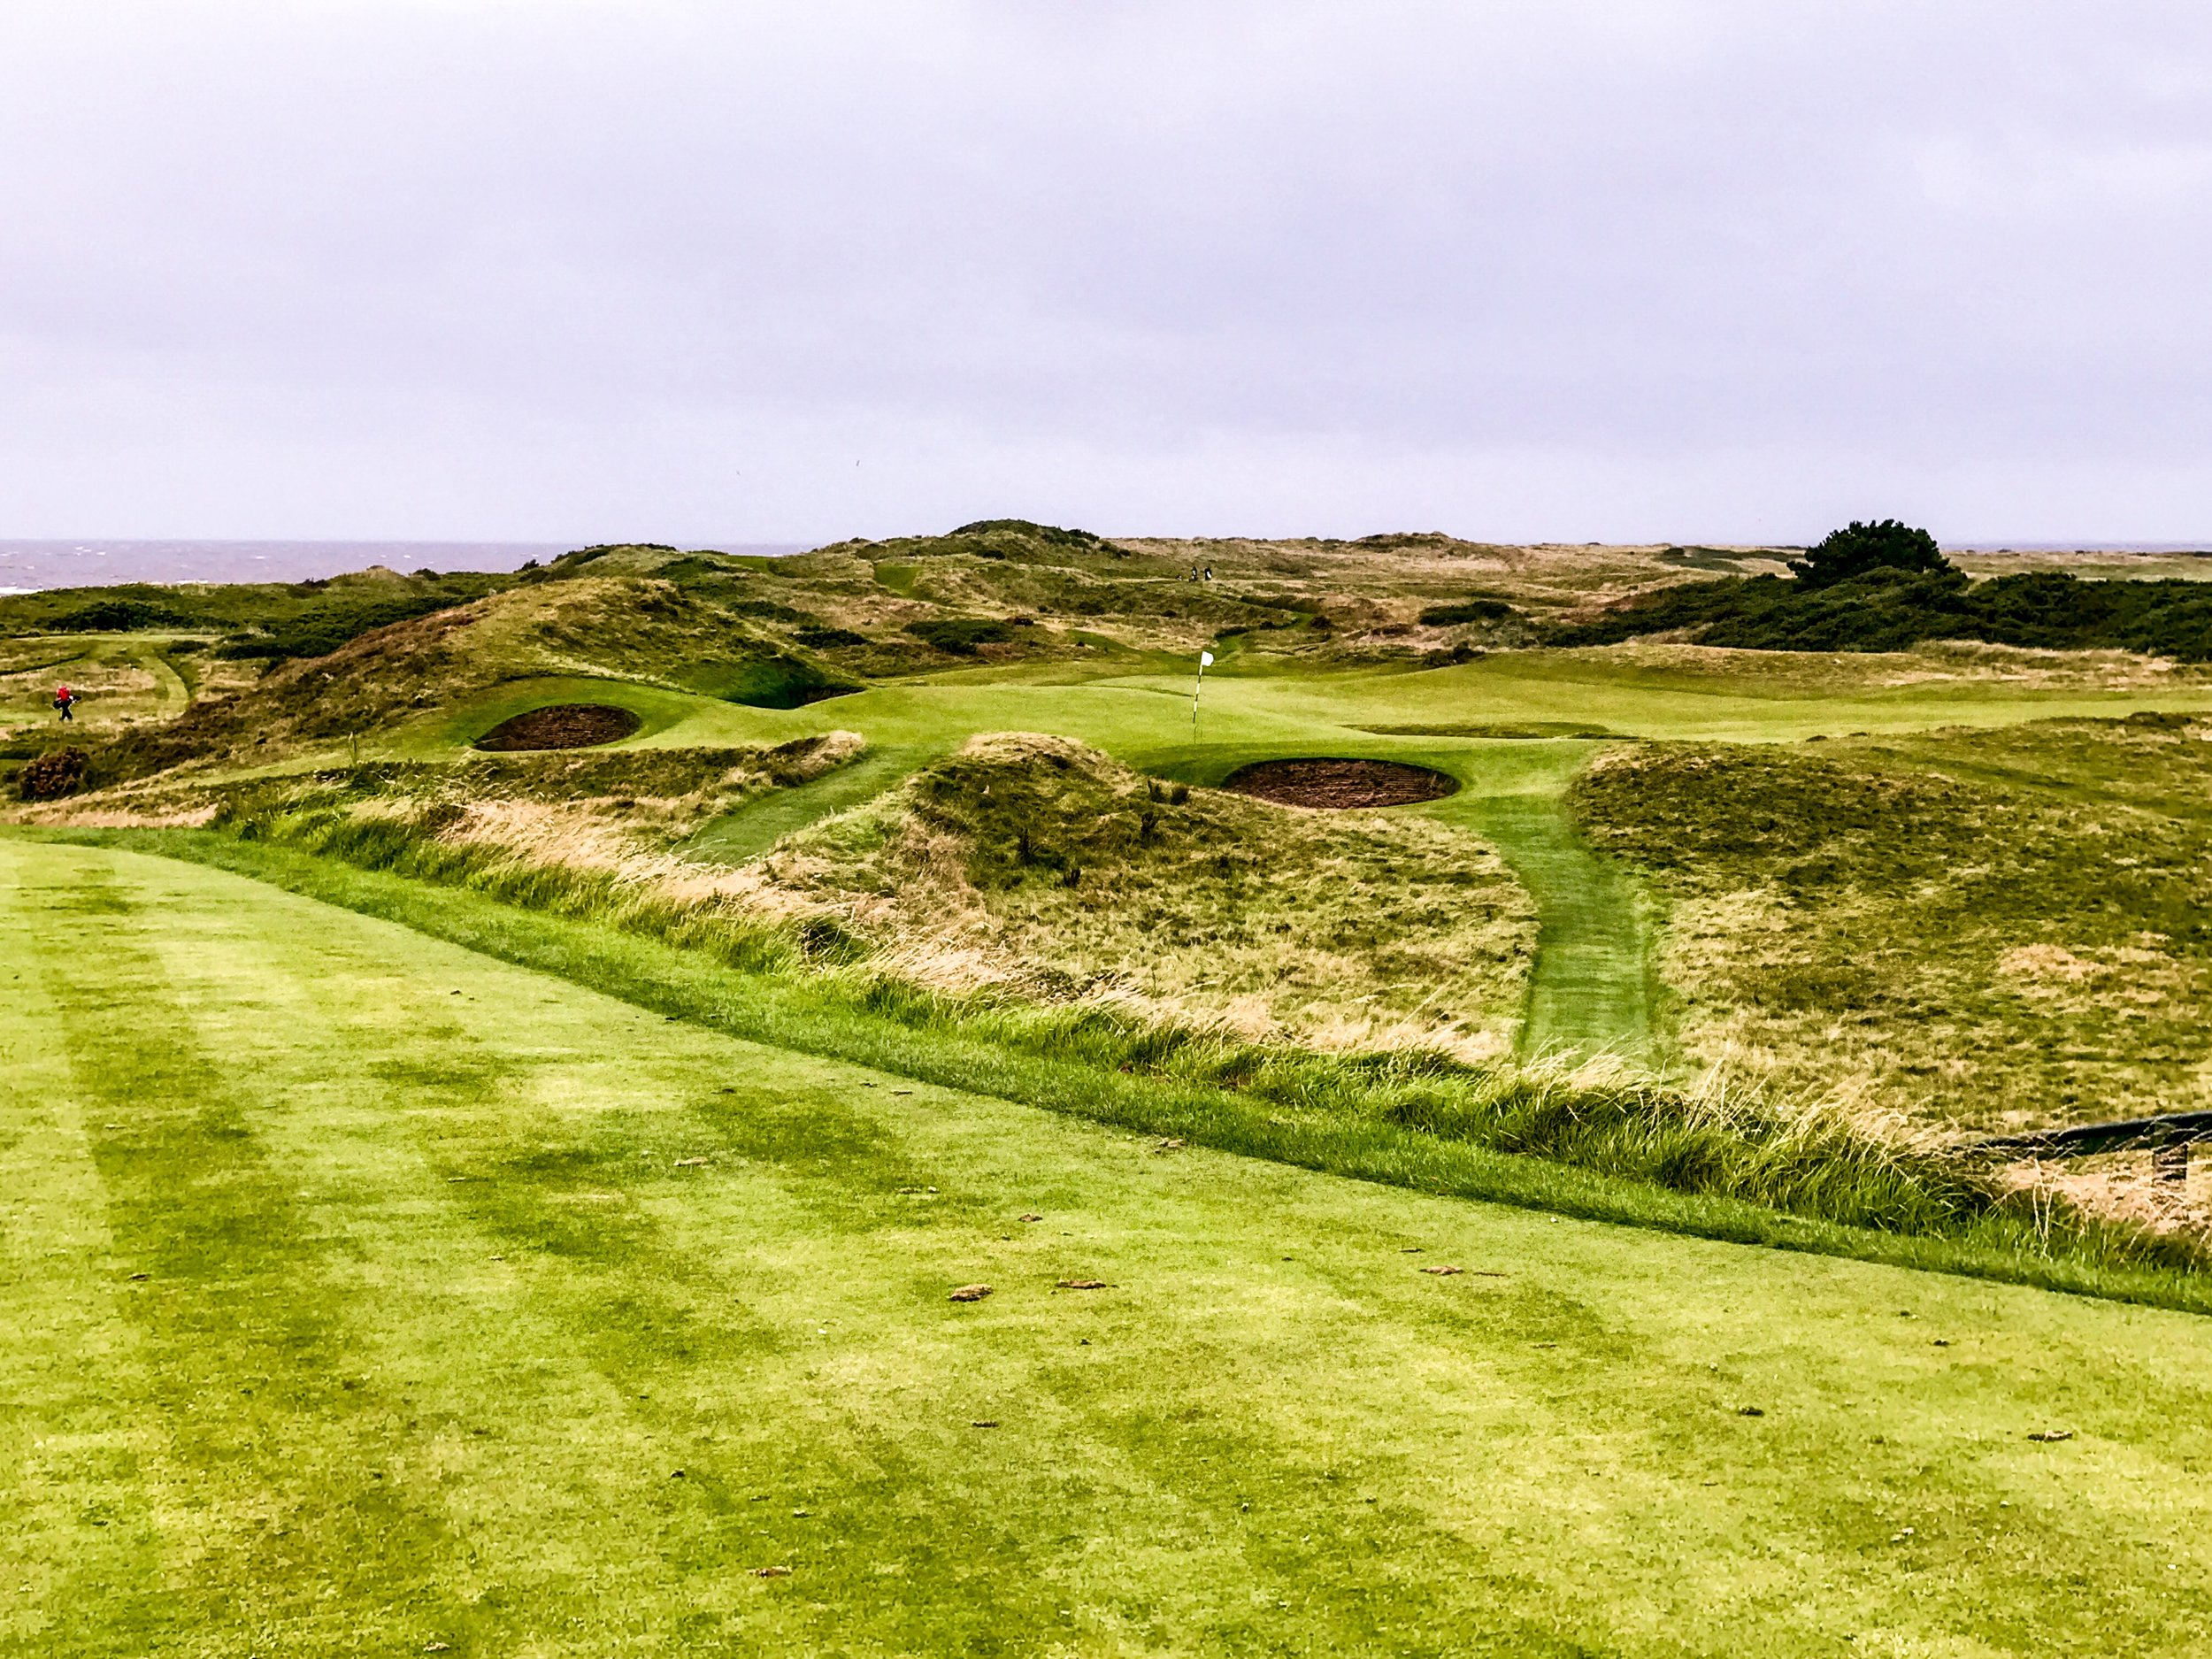 The Postage Stamp may be the most famous par 3 in the UK